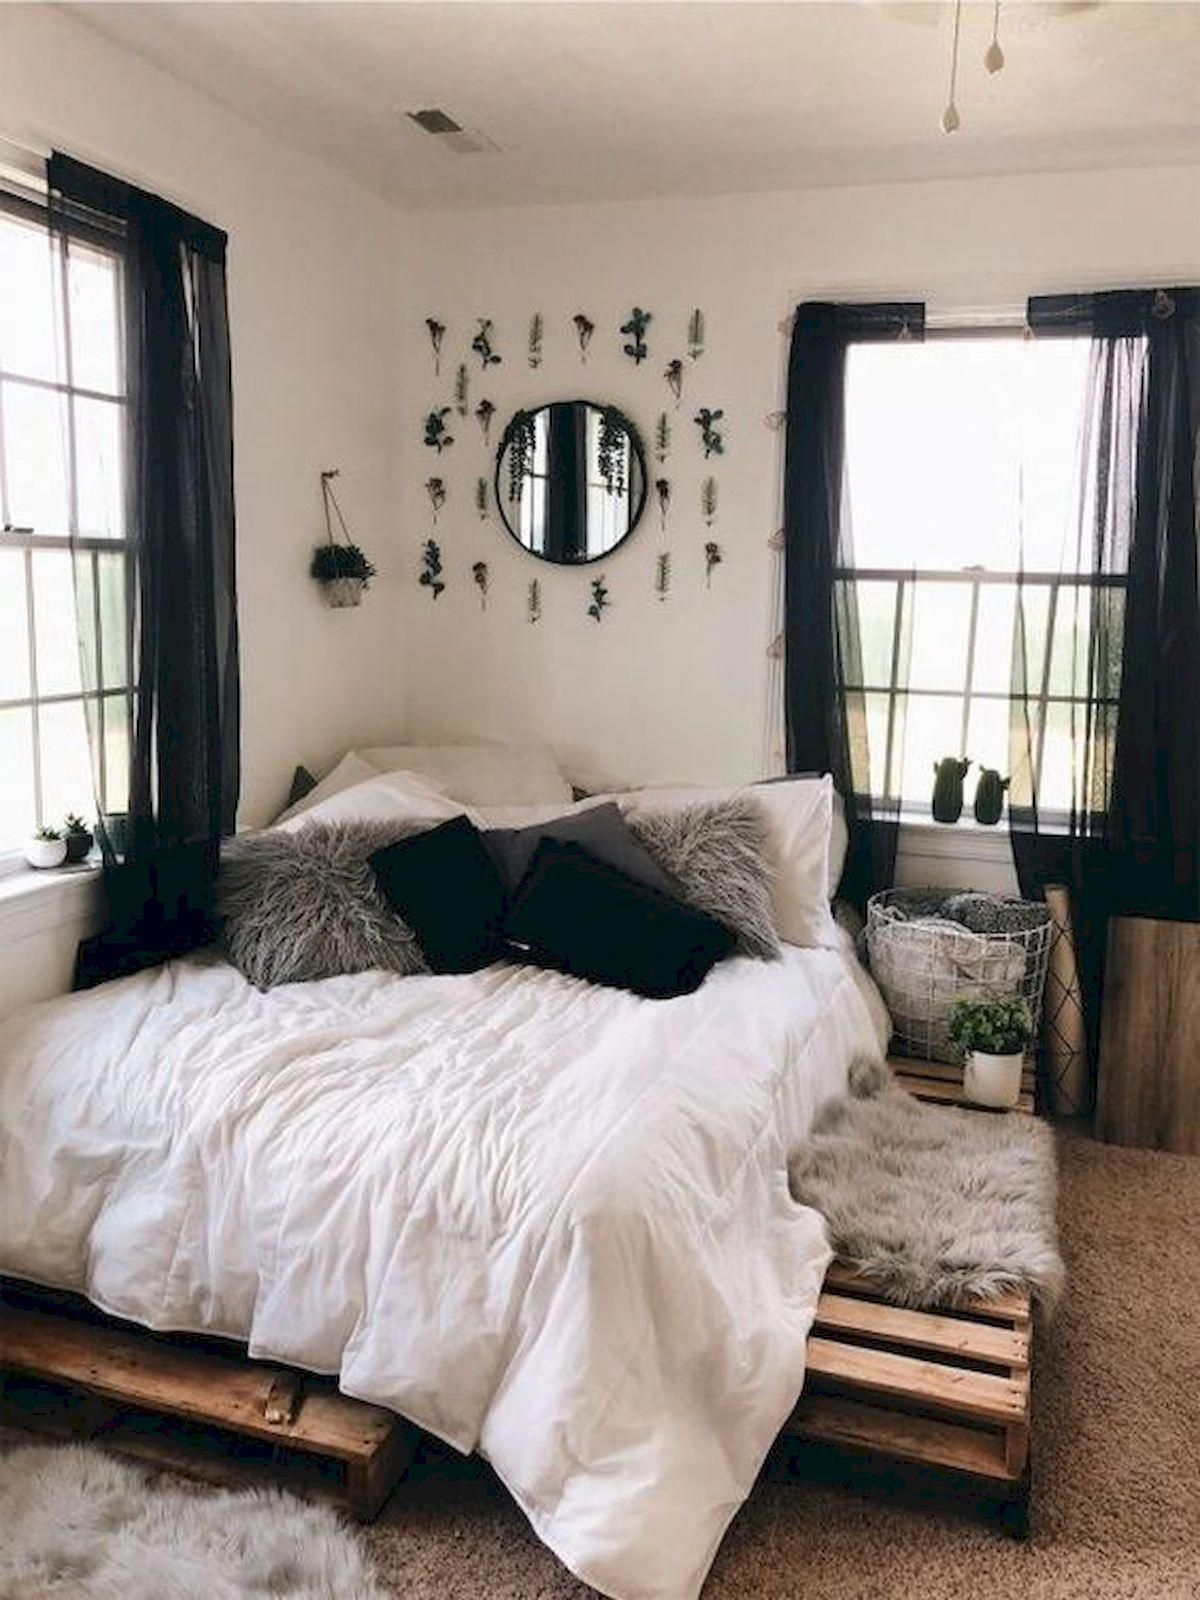 Small Bedroom Ideas Pretty Bedrooms For Adults Different Bedroom Designs 20190317 Small Room Bedroom Remodel Bedroom Bedroom Inspirations